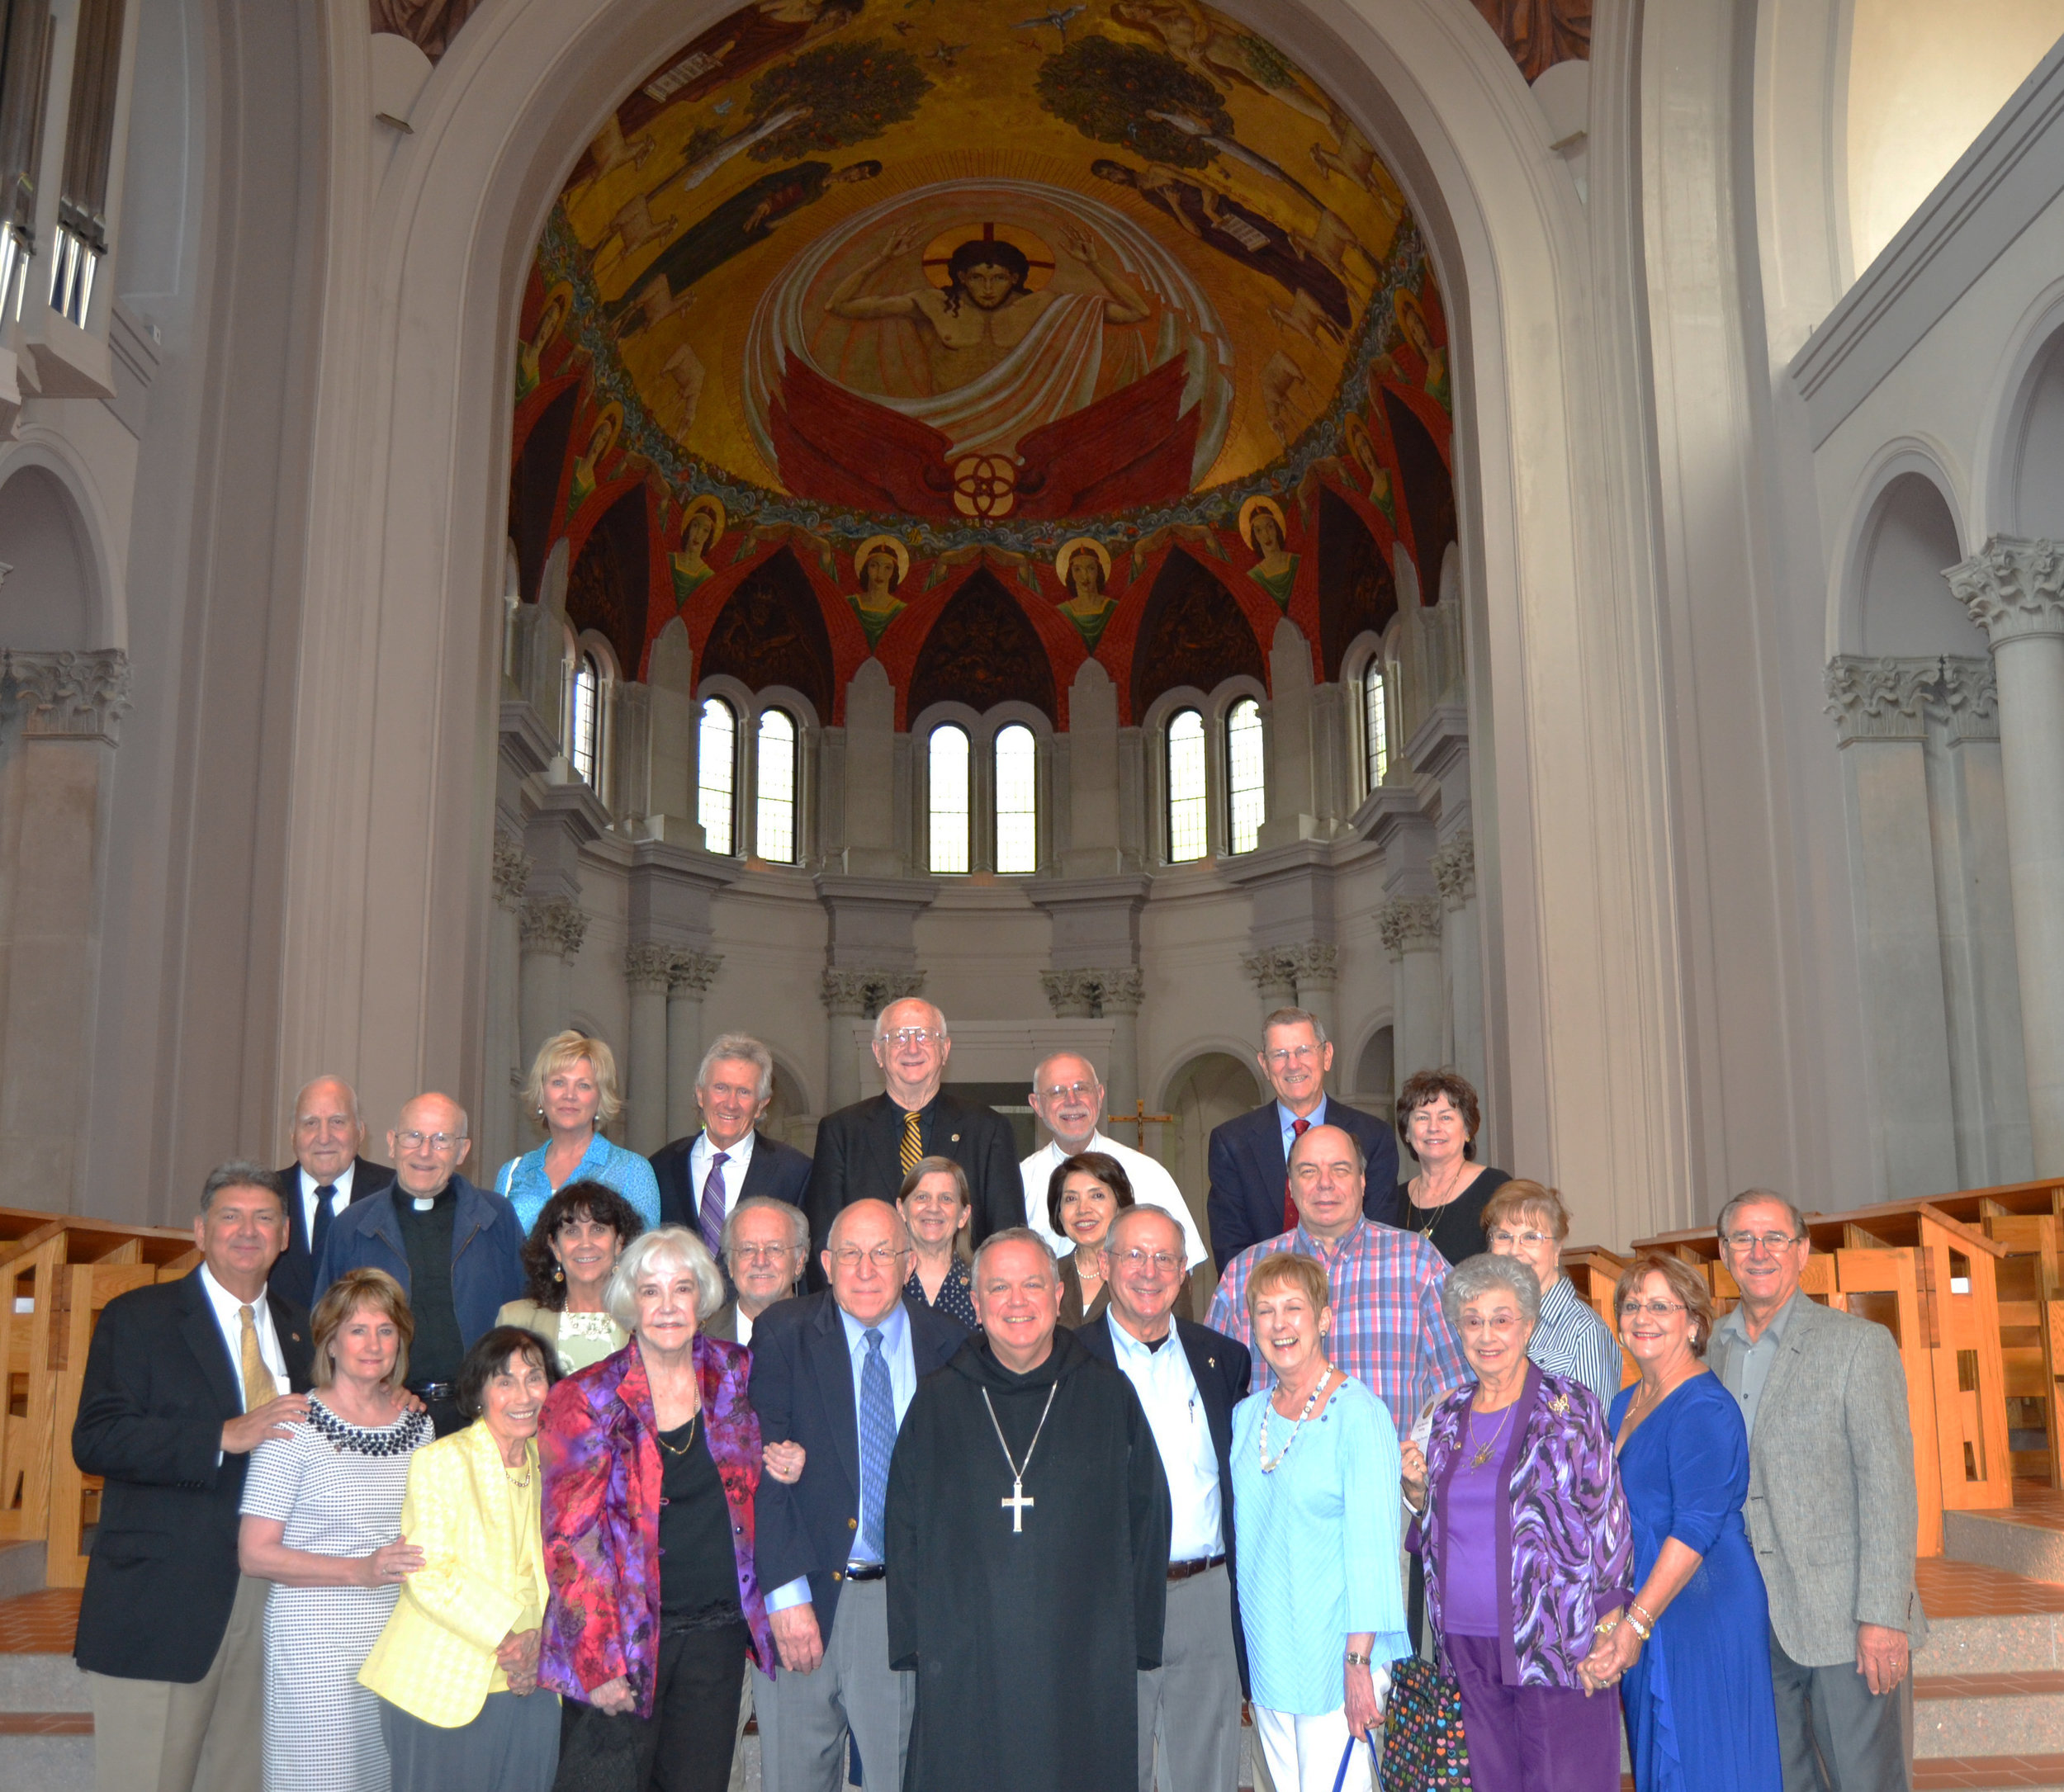 2015 ST. BENEDICT SOCIETY CELEBRATION Several new members were inducted in July of 2015.